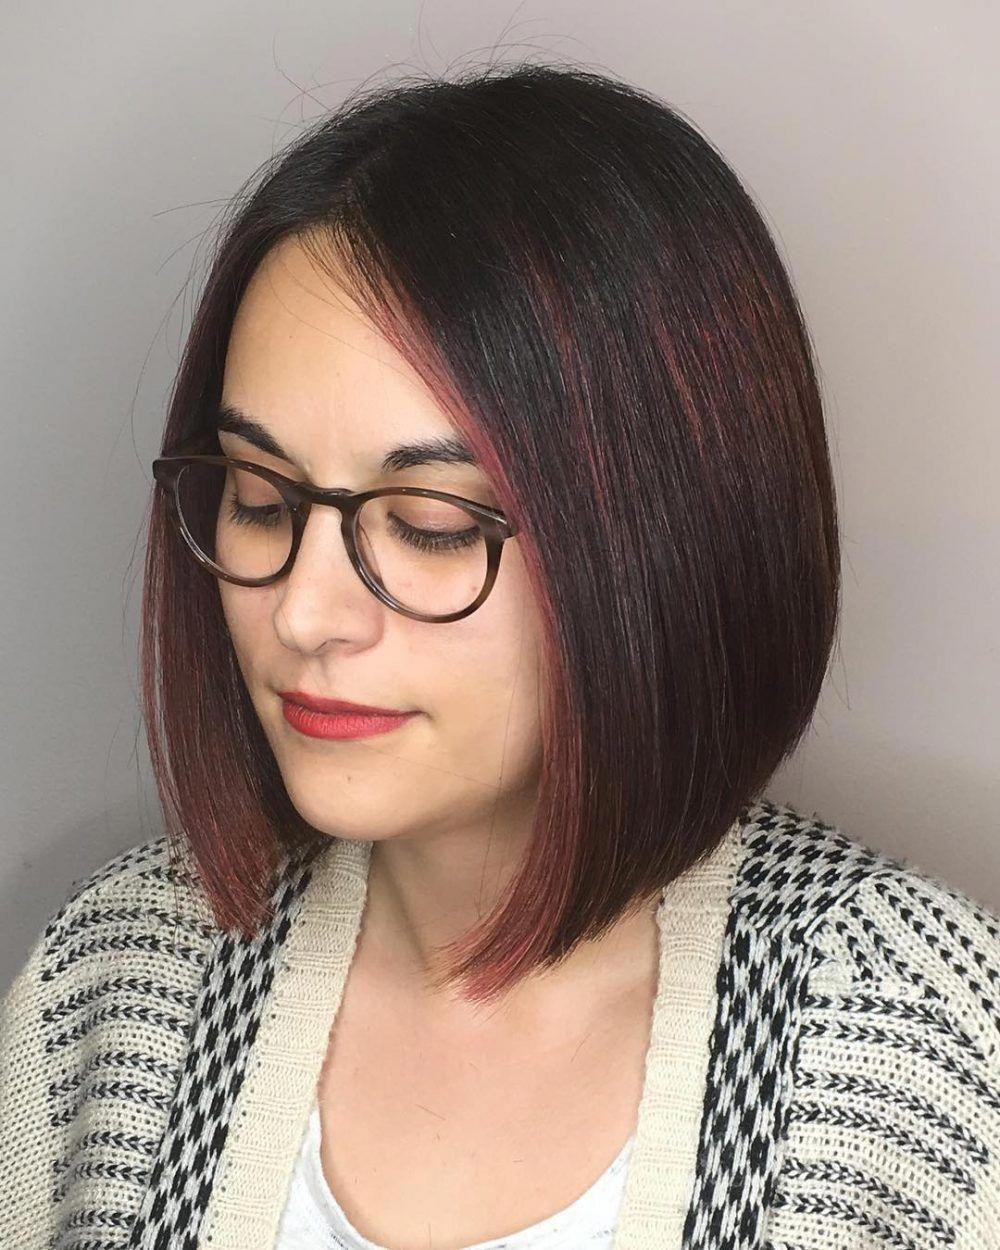 Customizable Dark Red Graduated Bob With Glasses Shorthairstyles Bob Hairstyles For Round Face Red Bob Hair Bob Haircut For Round Face